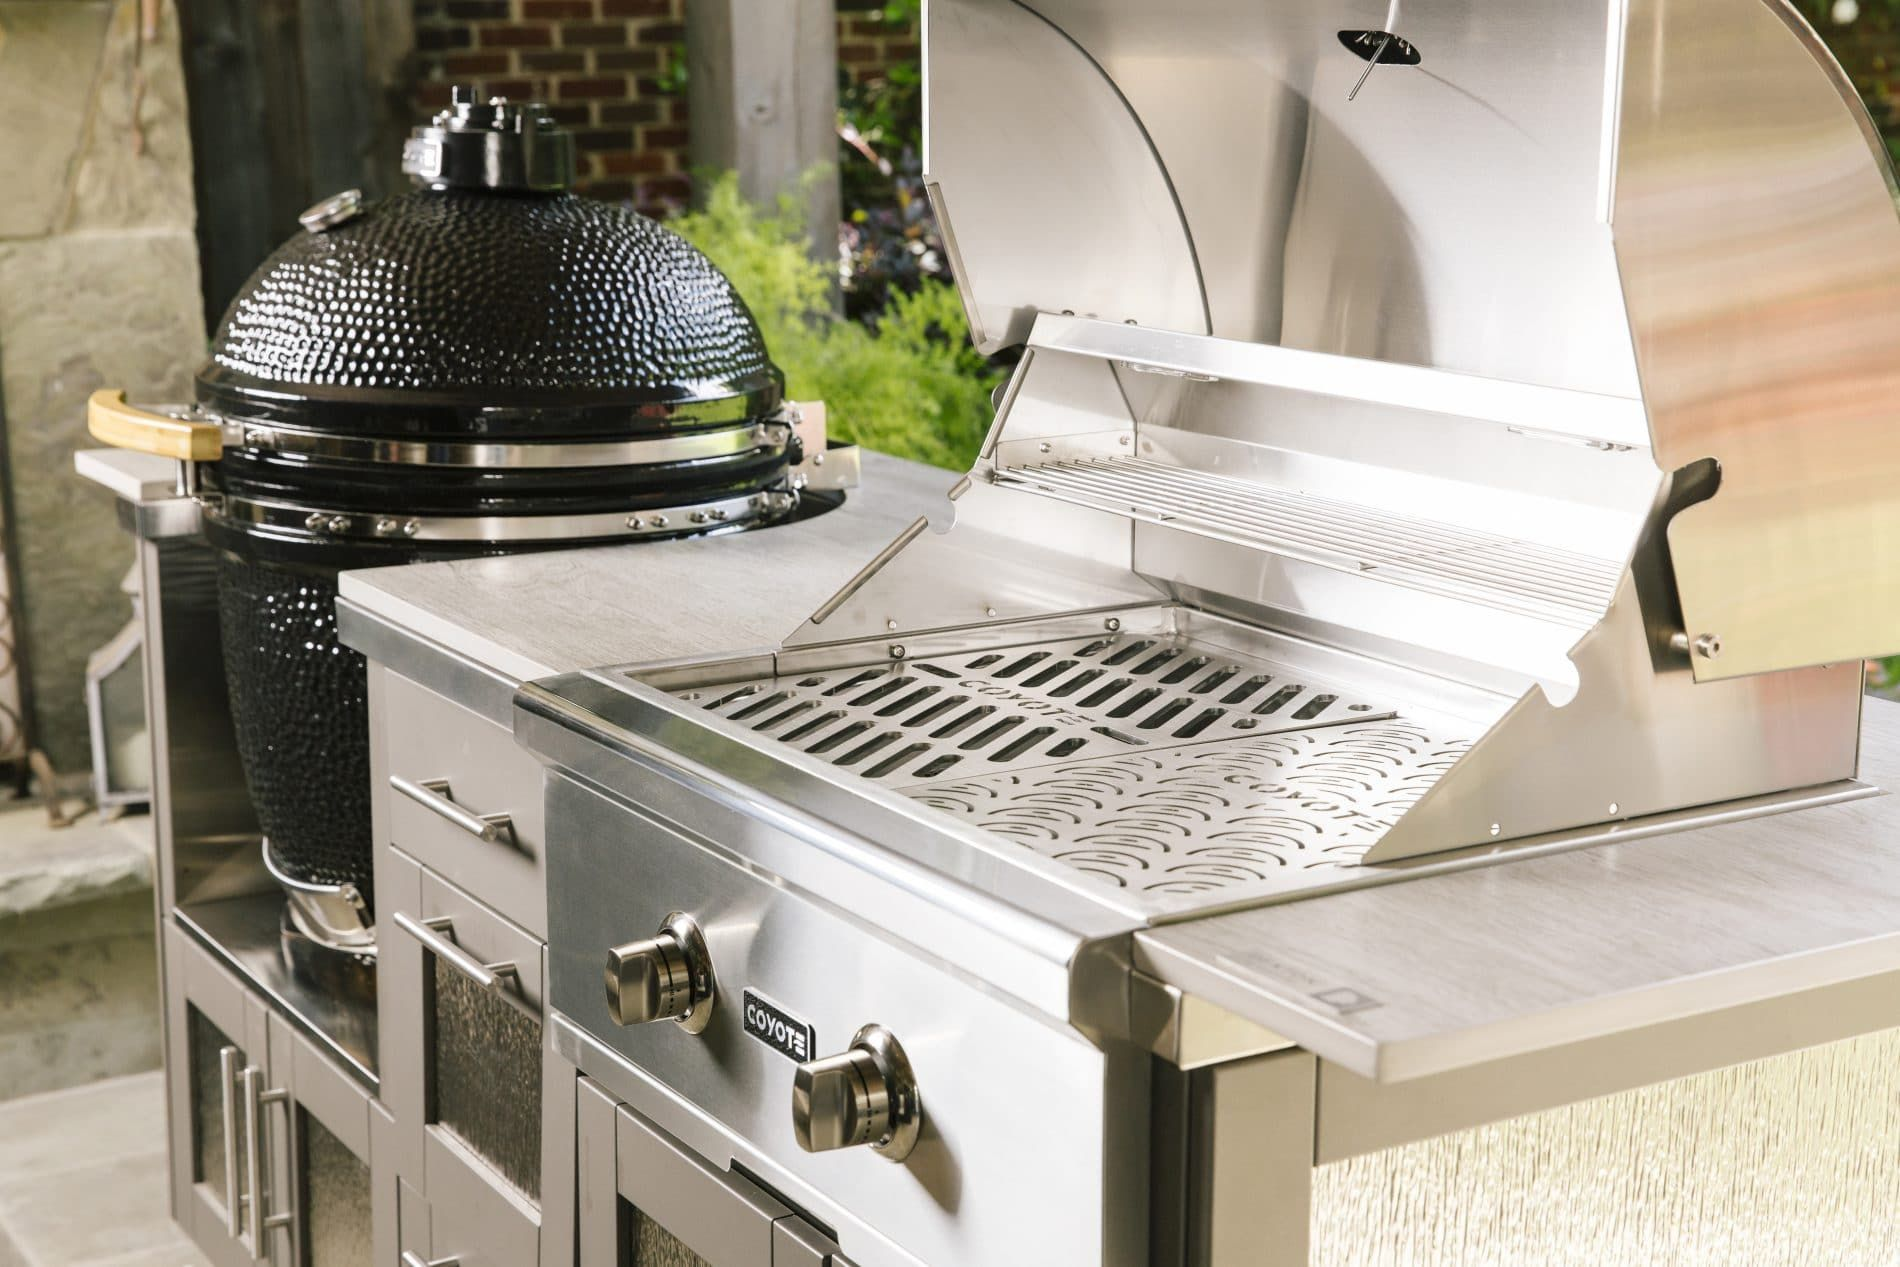 Coyote Grills Make Both Asado And Traditional Charcoal Grills For Those Who Enjoy Slow Cookin In 2020 Outdoor Kitchen Outdoor Kitchen Appliances Outdoor Kitchen Island